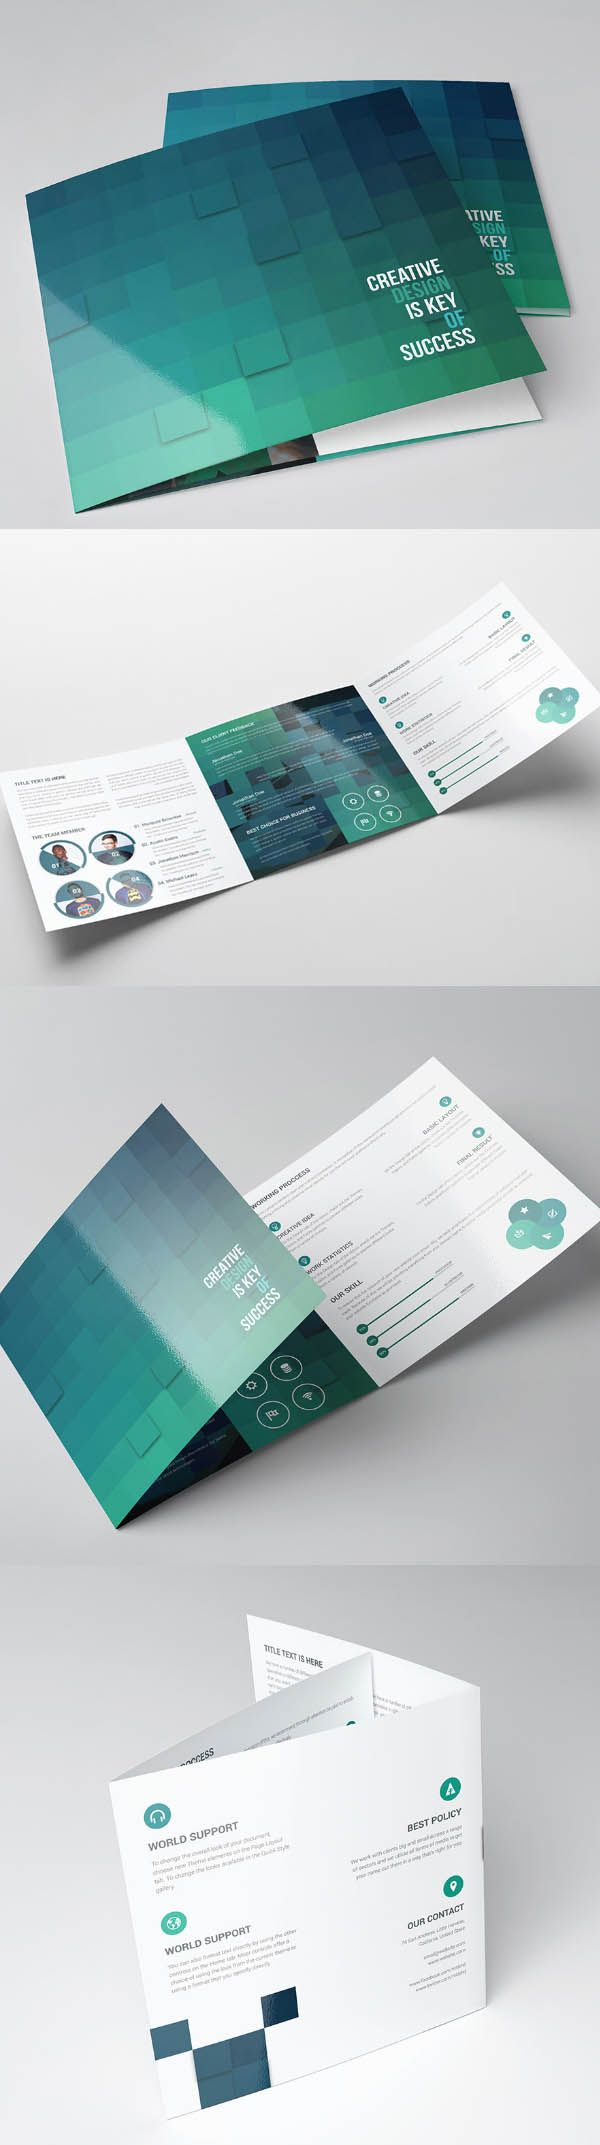 Square Tri-fold Brochure Template